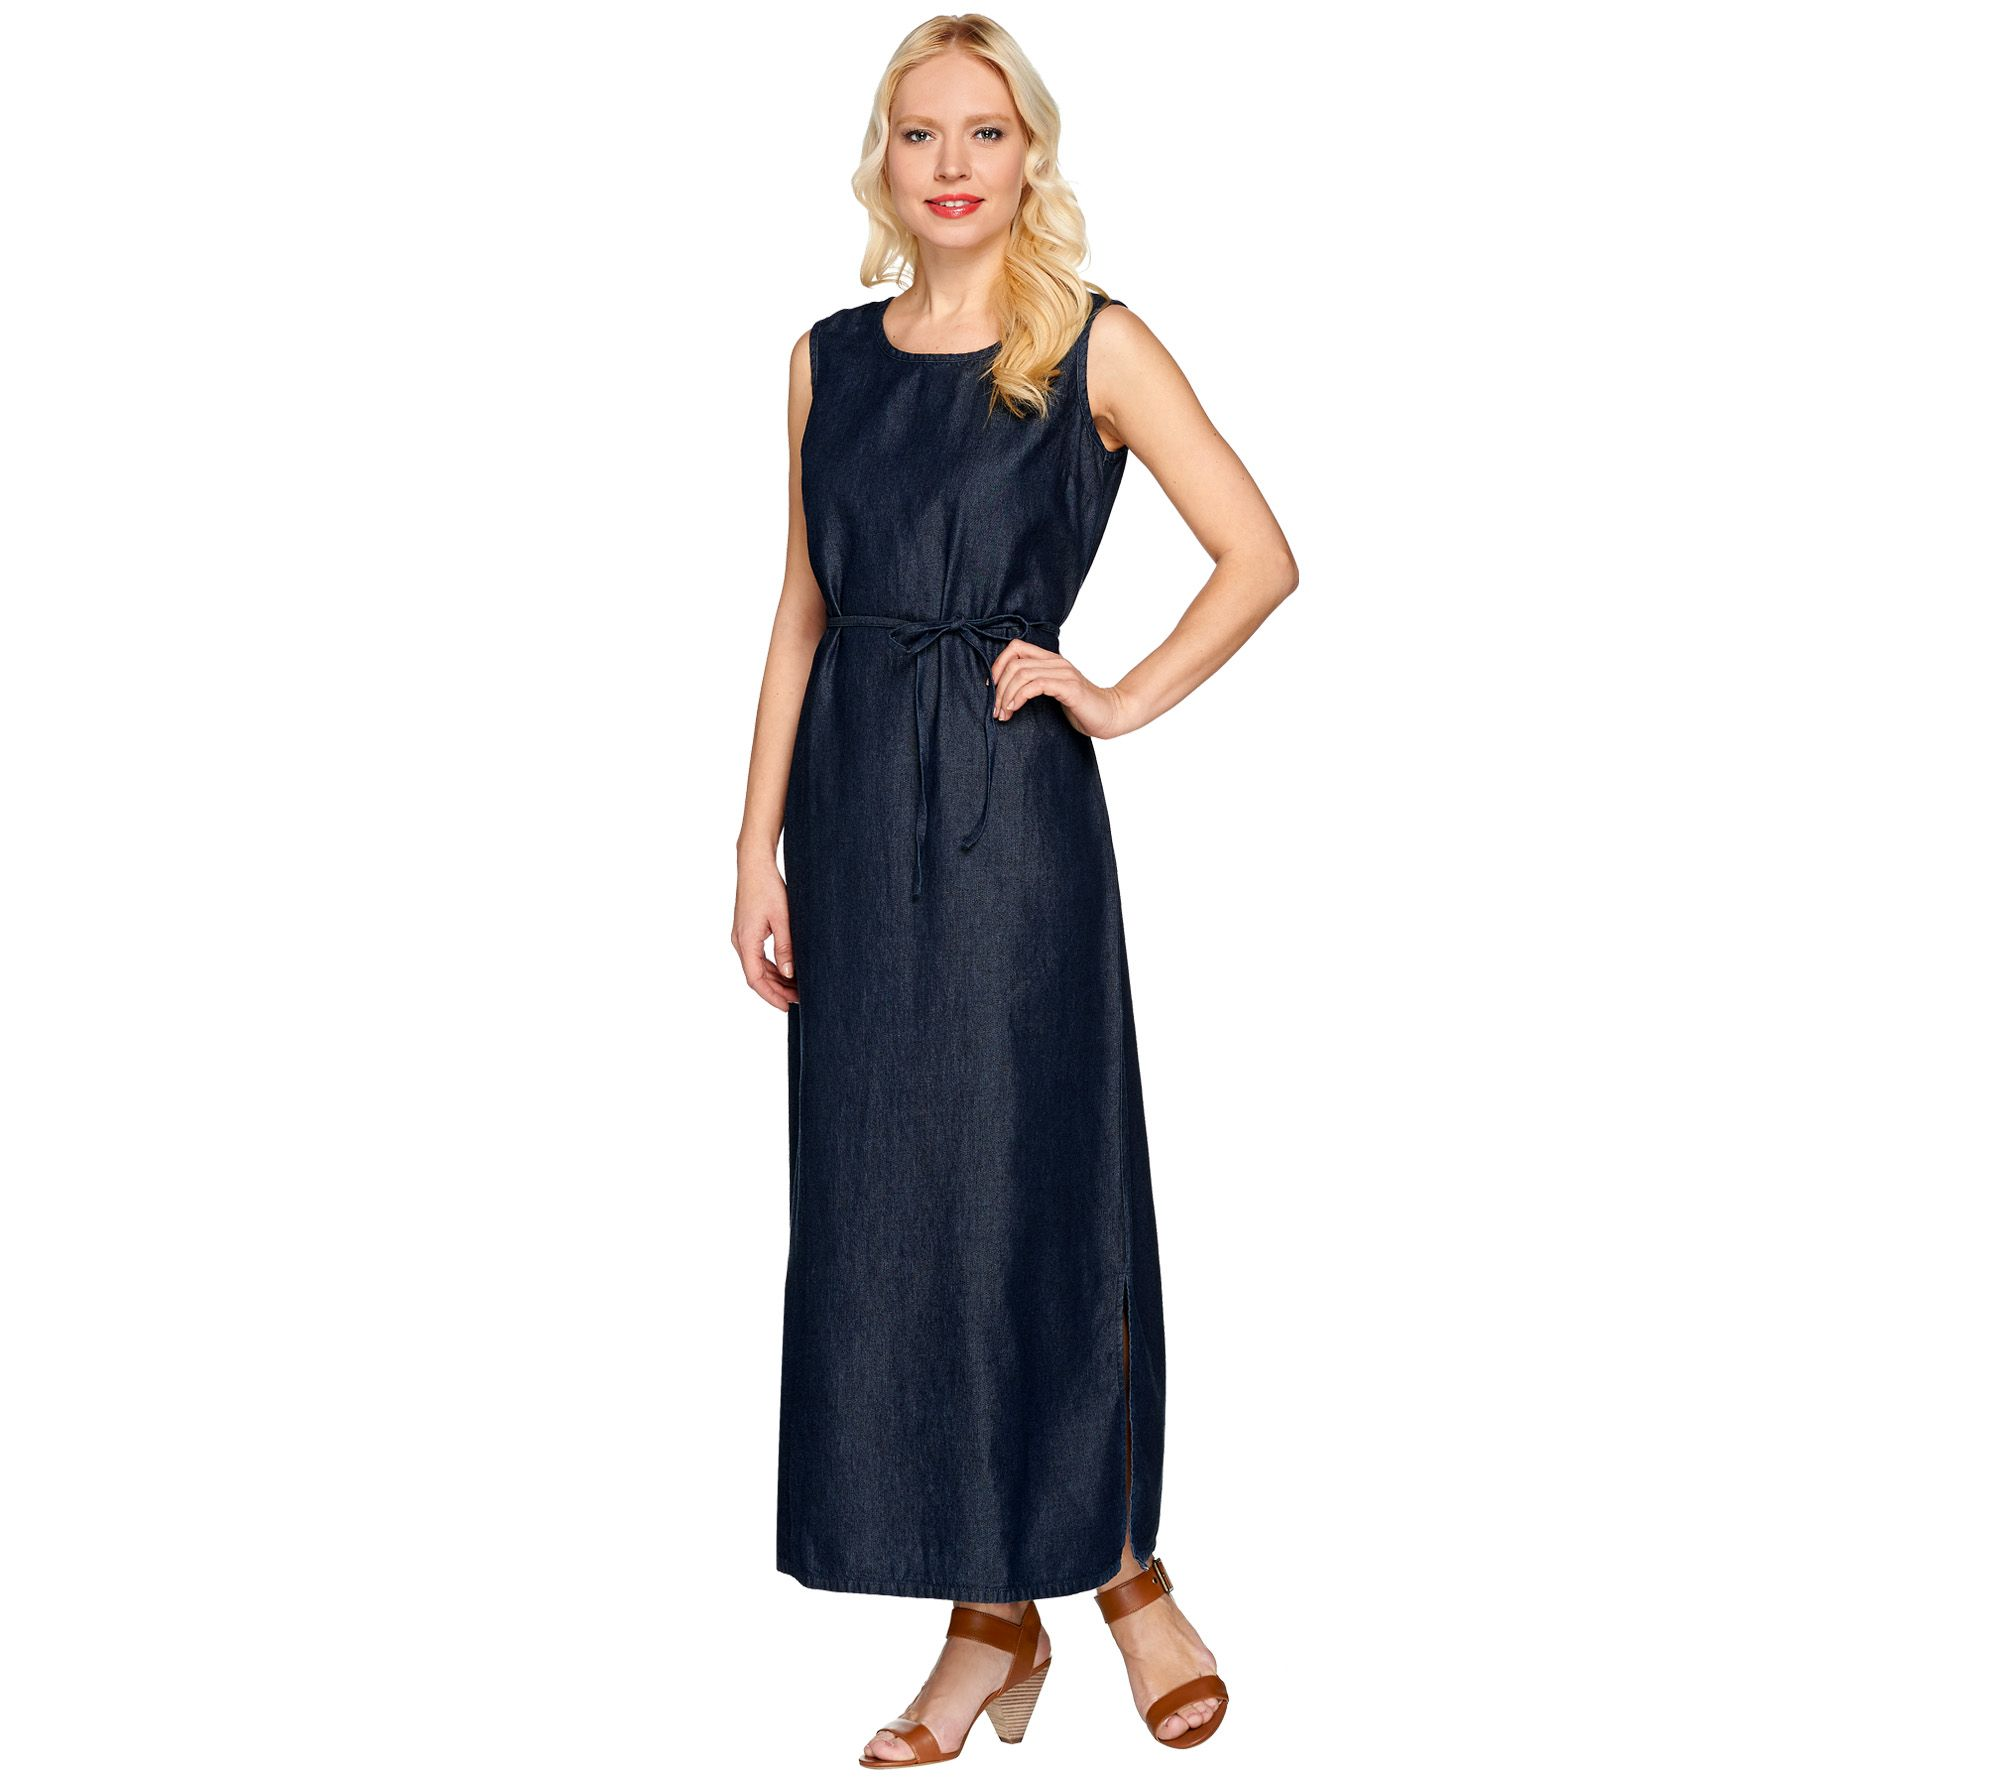 Denim & Co. — Dresses & Skirts — Fashion — QVC.com